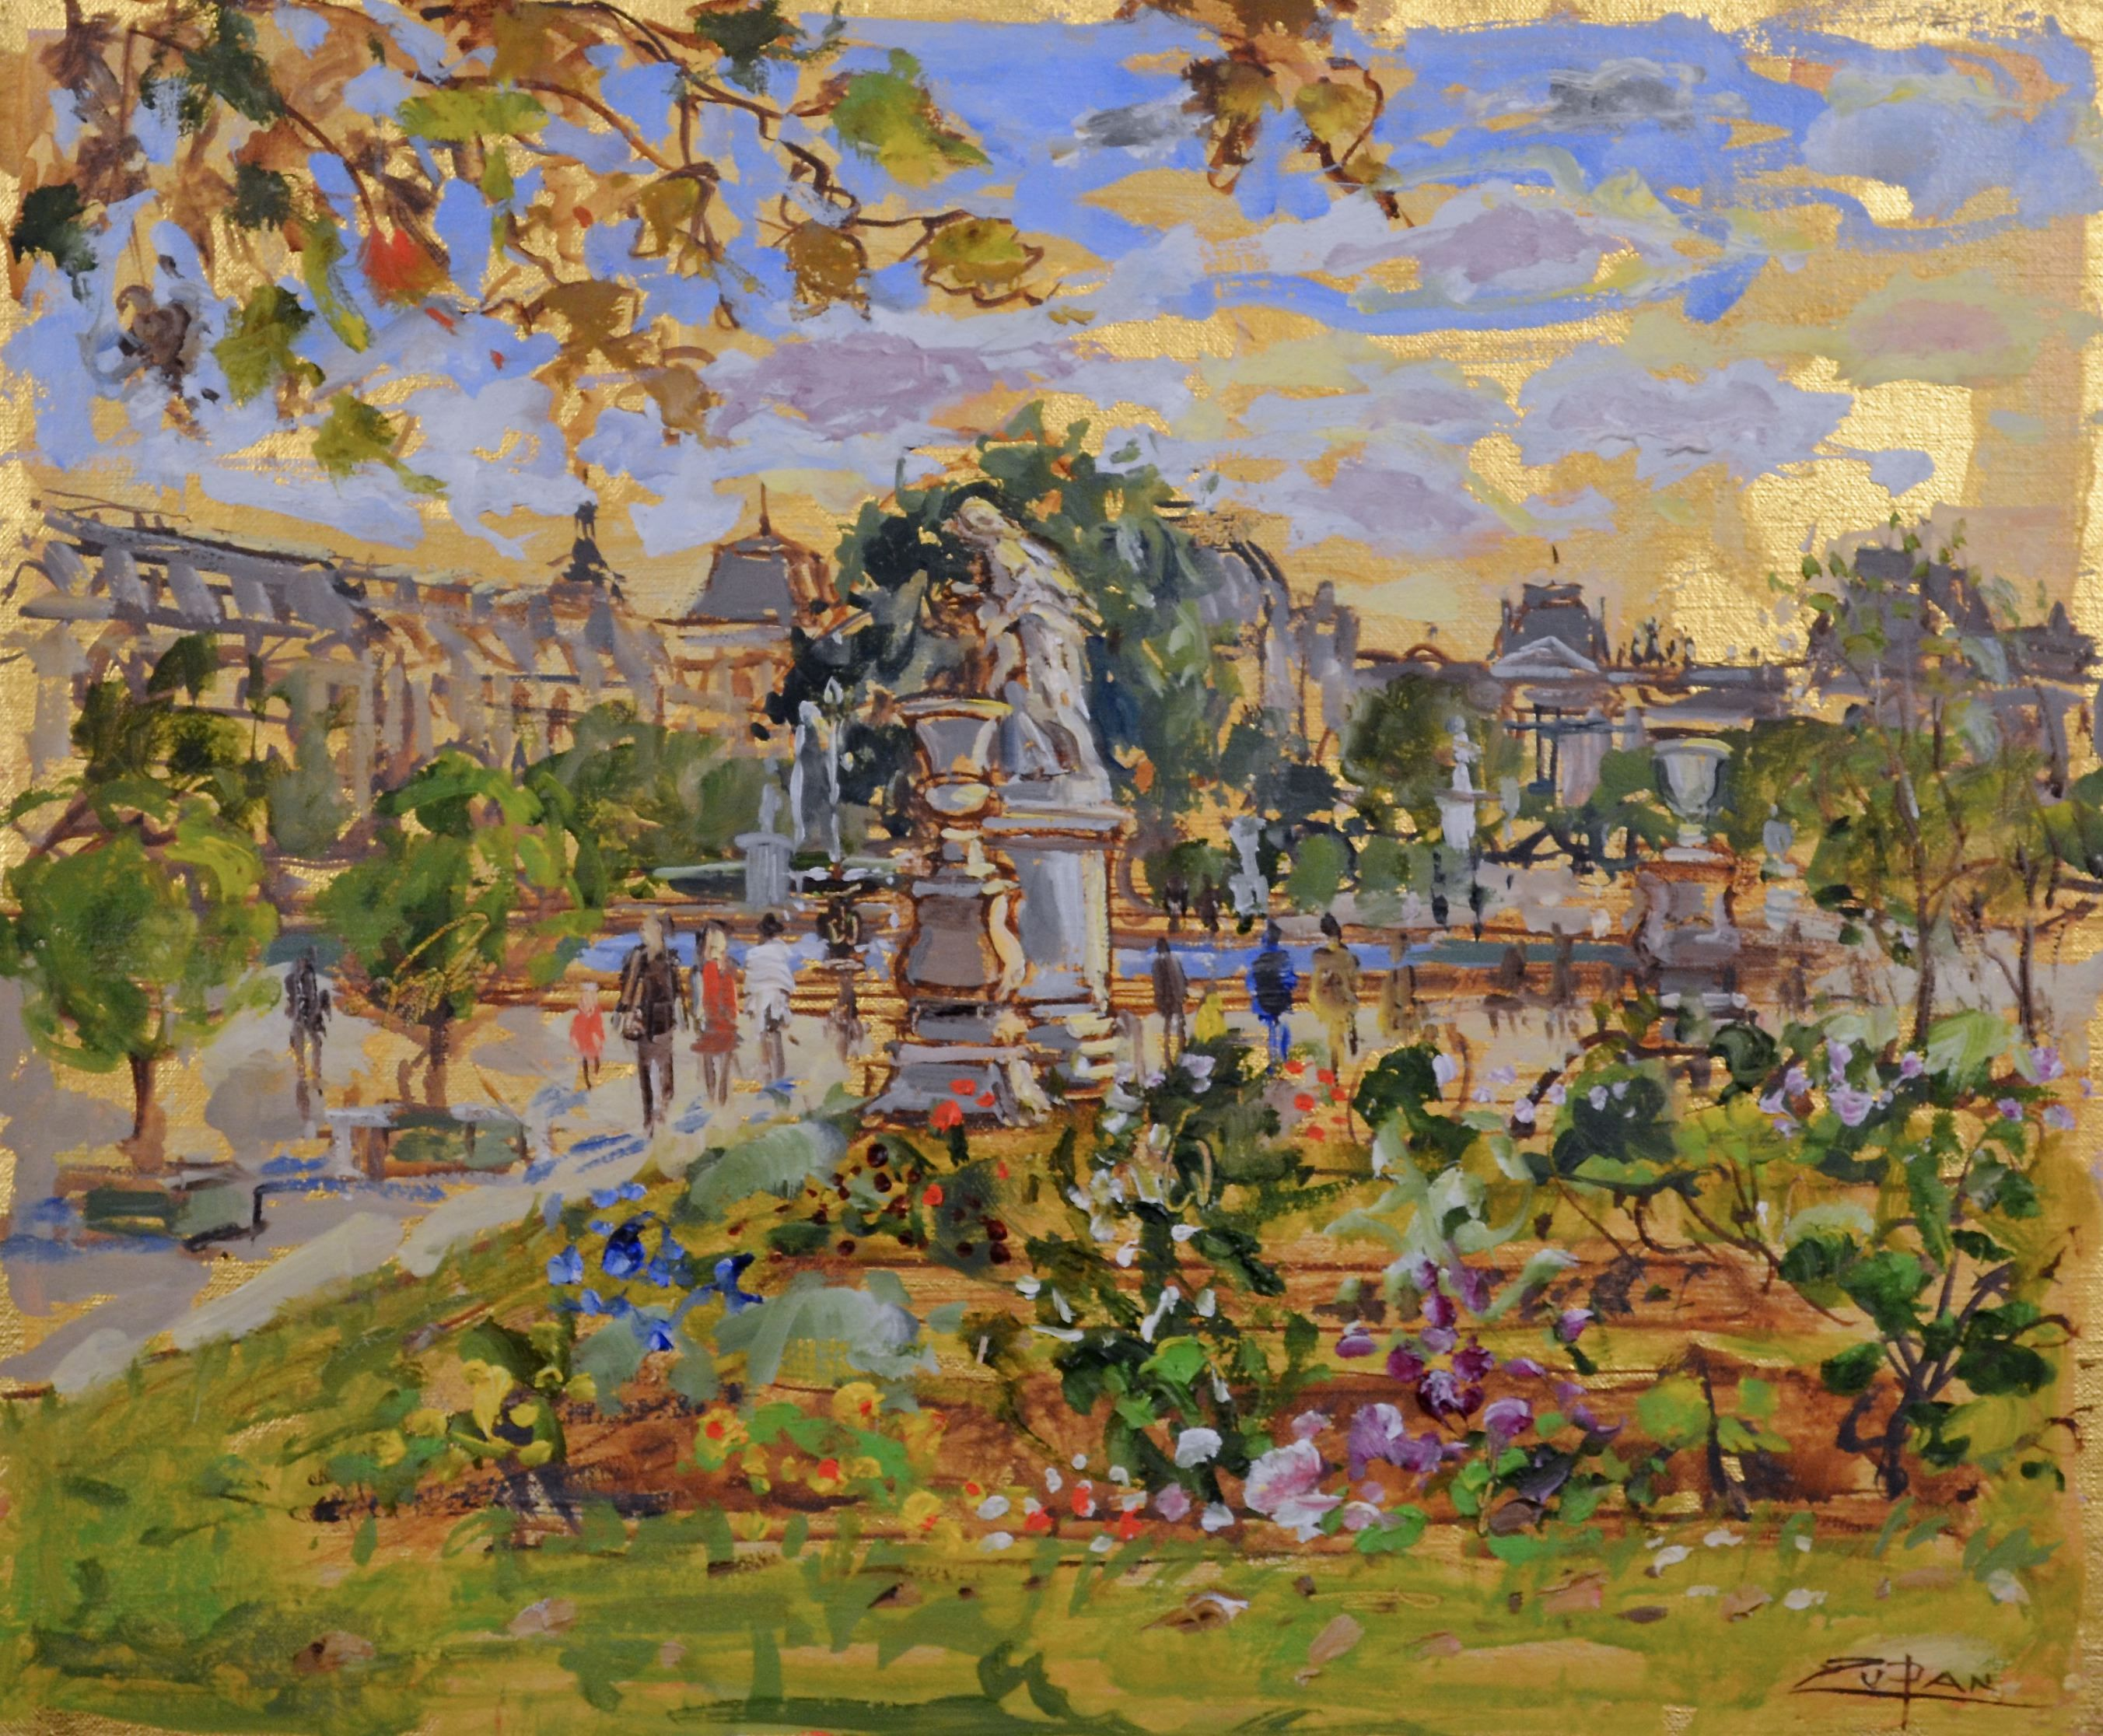 Bruno Zupan - Tuileries July Afternoon - Original painting - Off The Wall Gallery Houston